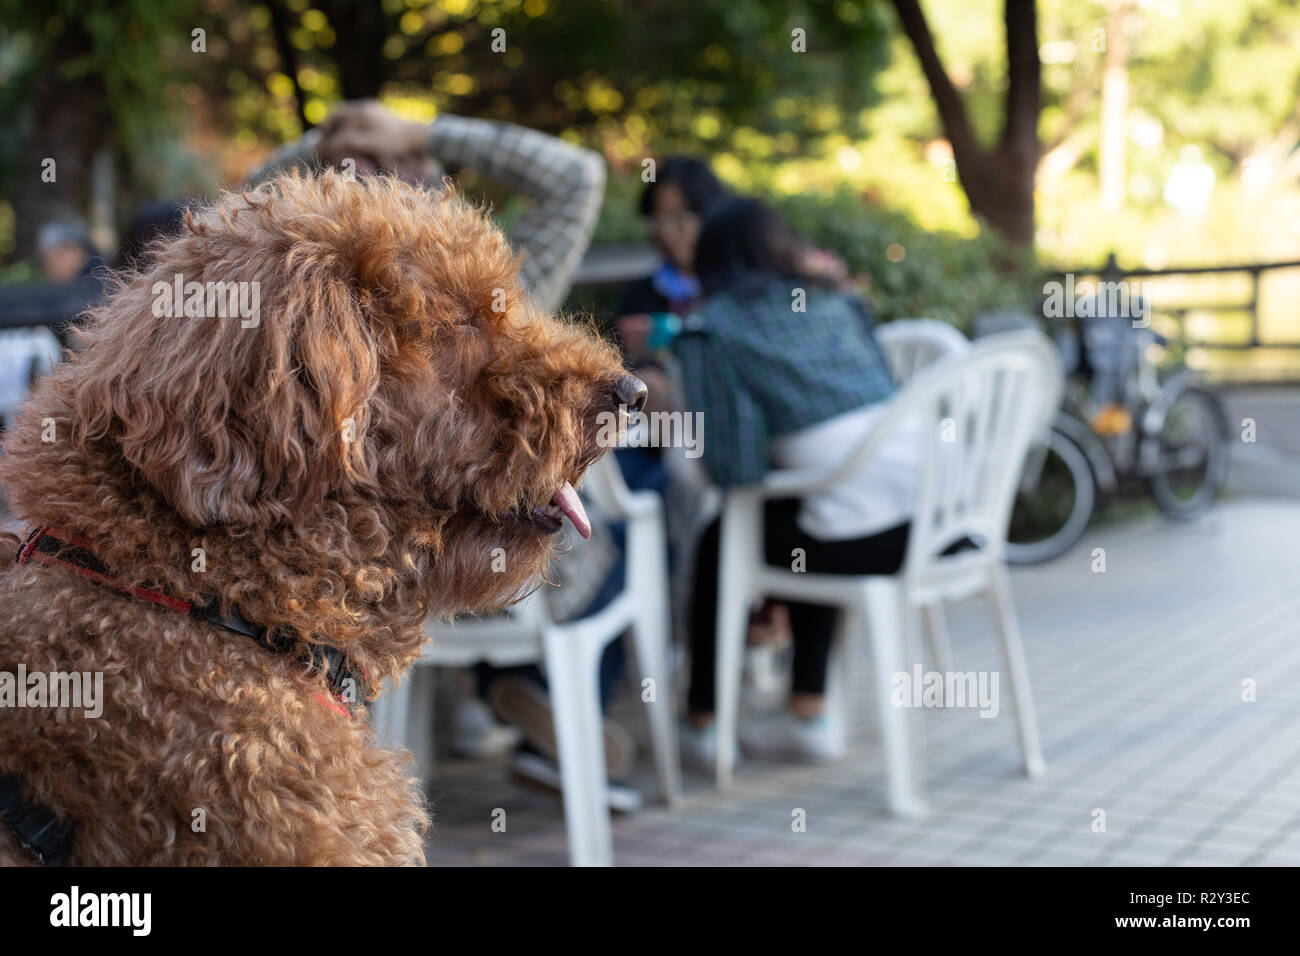 Portrait of brown poodle in an outdoor cafe Stock Photo